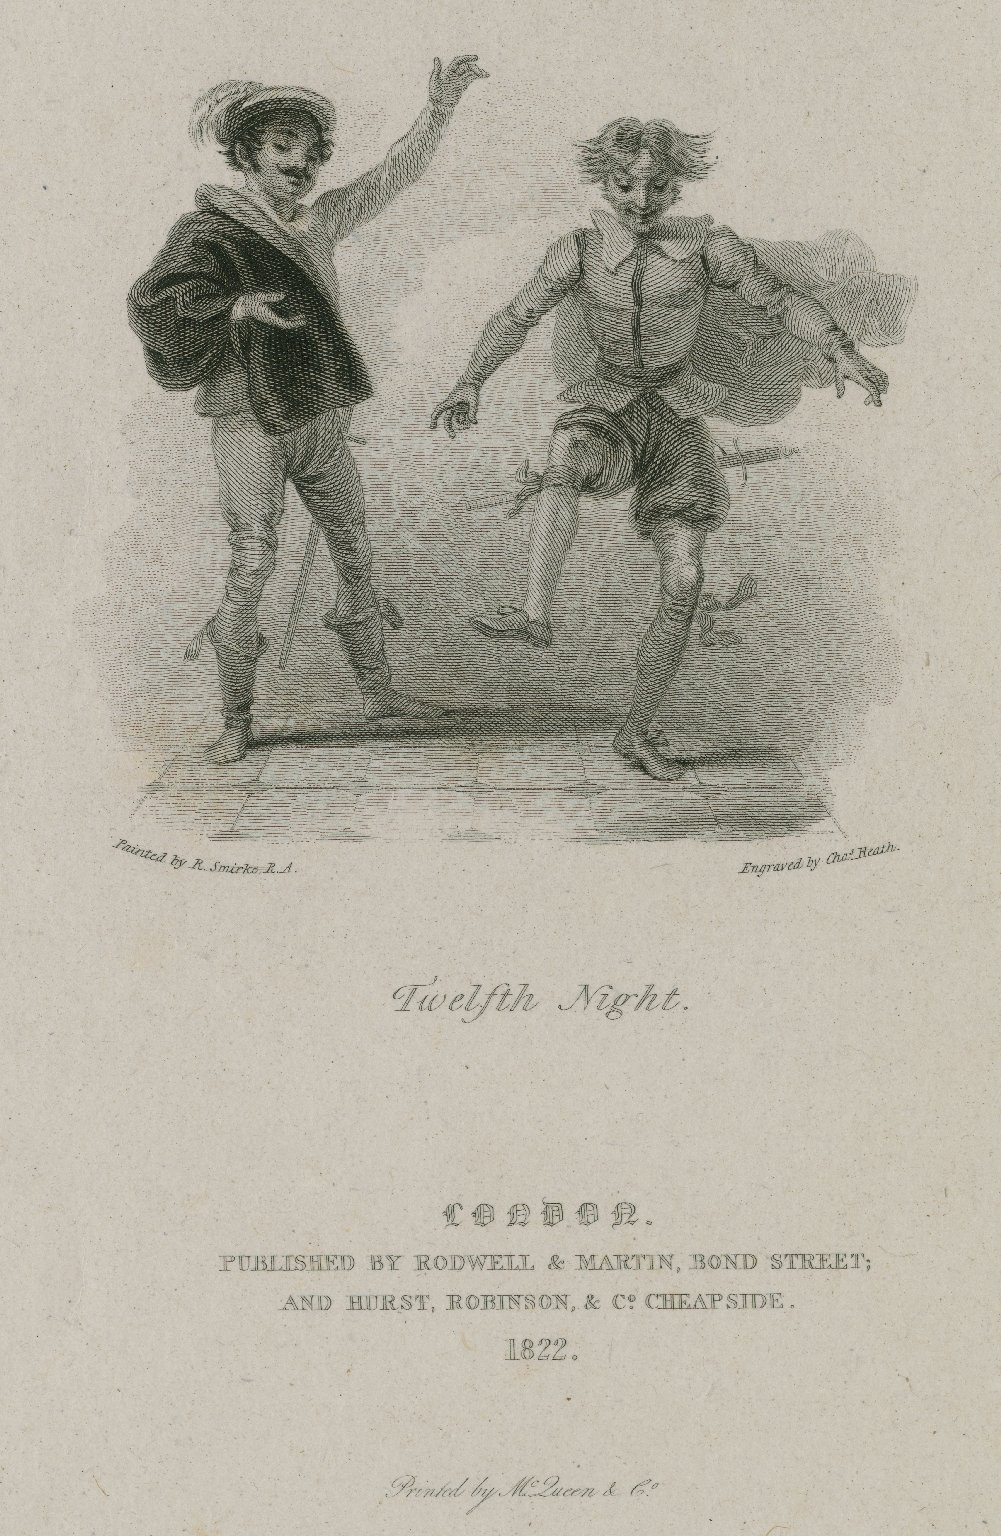 Twelfth night, [act I, sc. 3] [graphic] / painted by R. Smirke, R.A. ; engraved by Chas. Heath.